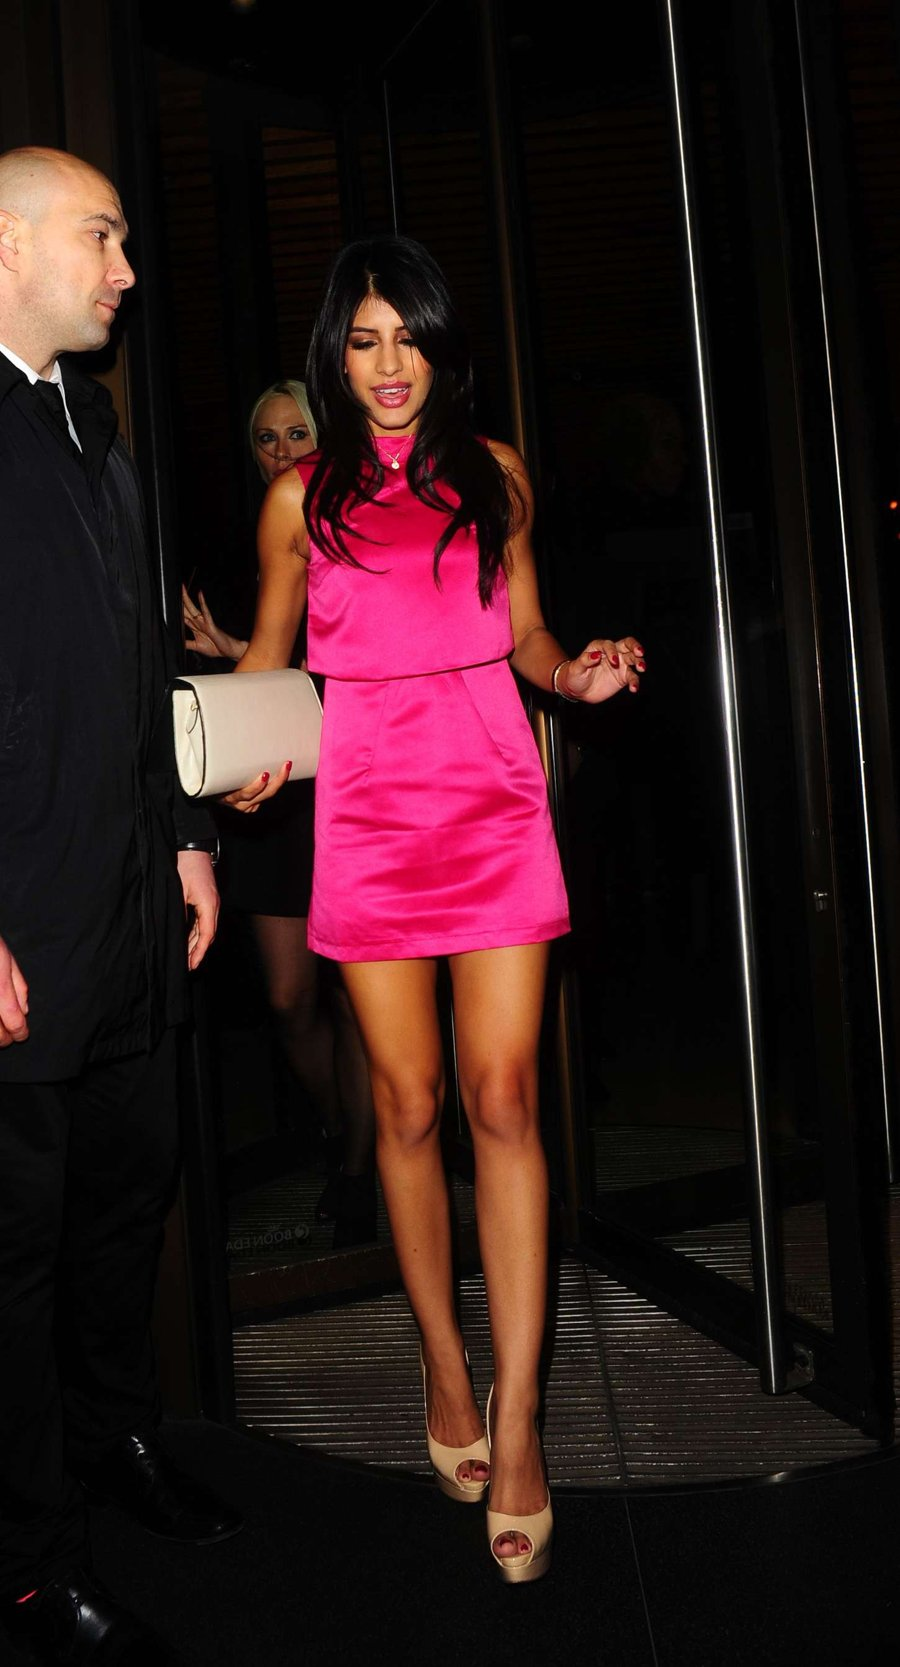 Jasmin Walia at Novikov Restaurant in London